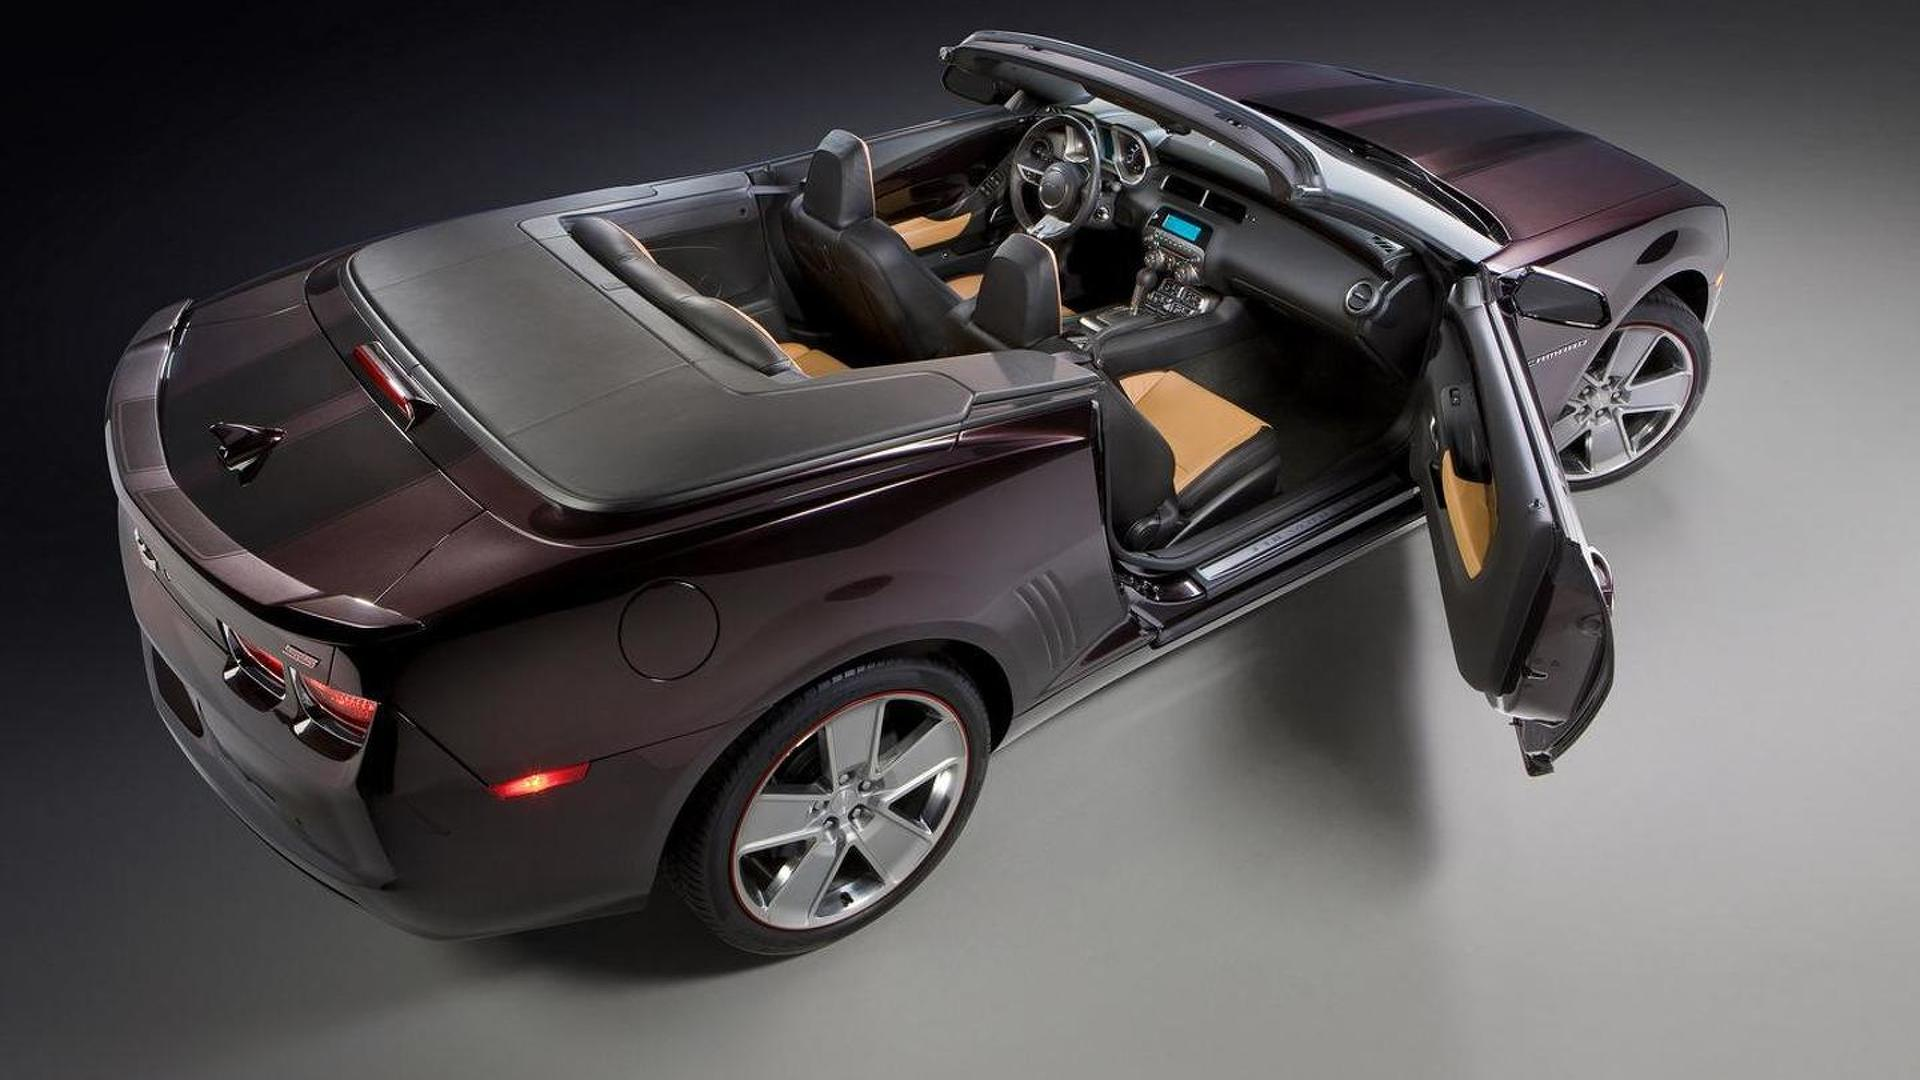 Neiman Marcus Chevrolet Camaro Convertible sells out in three minutes